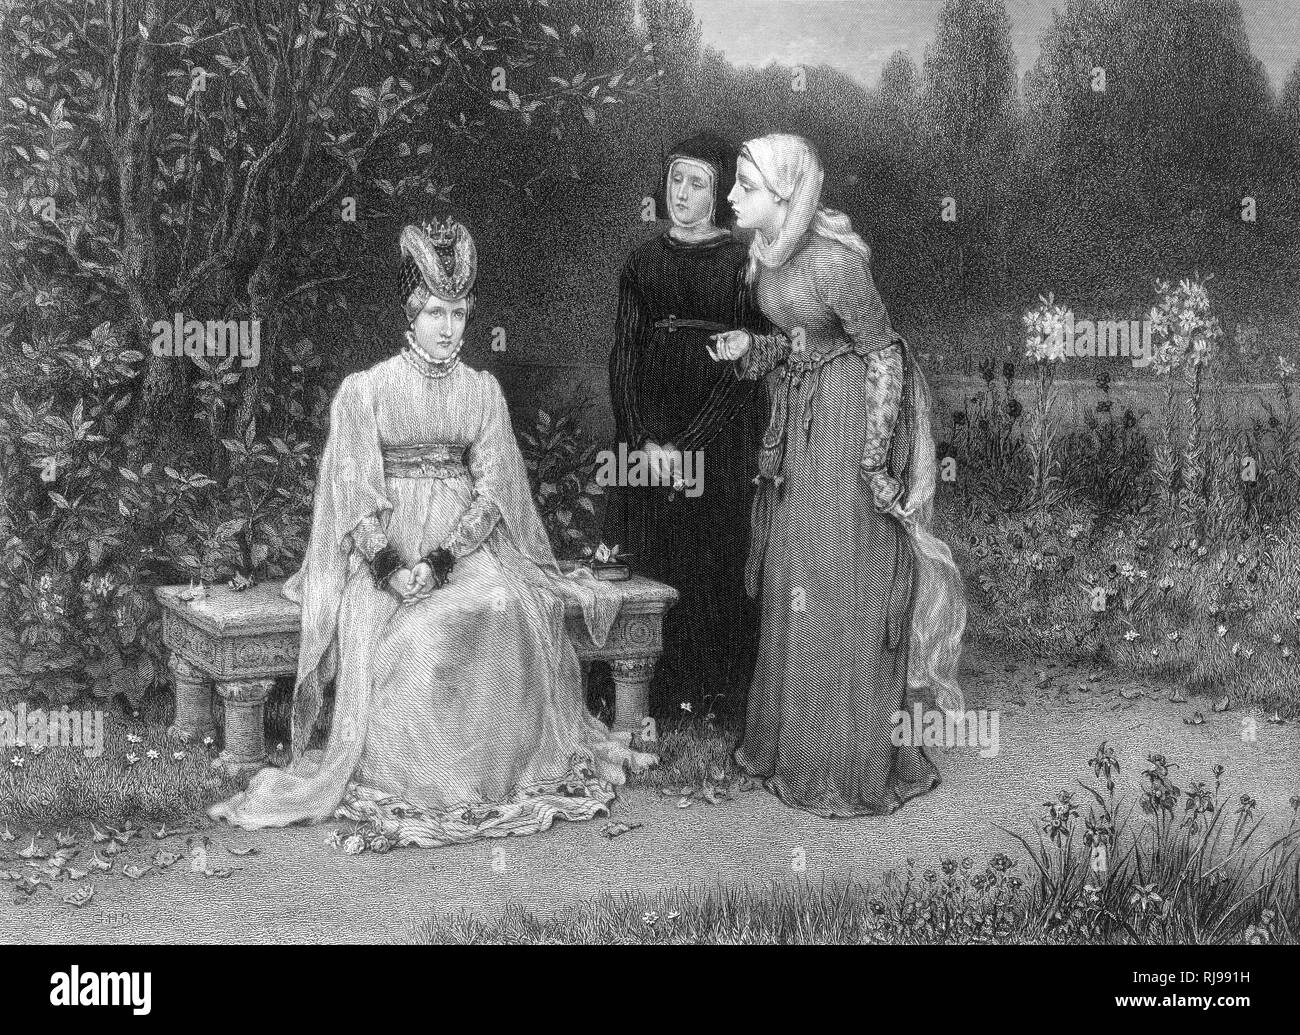 Shakespeare's Richard II, Isabella, the Queen and her ladies in waiting outside in the garden Stock Photo